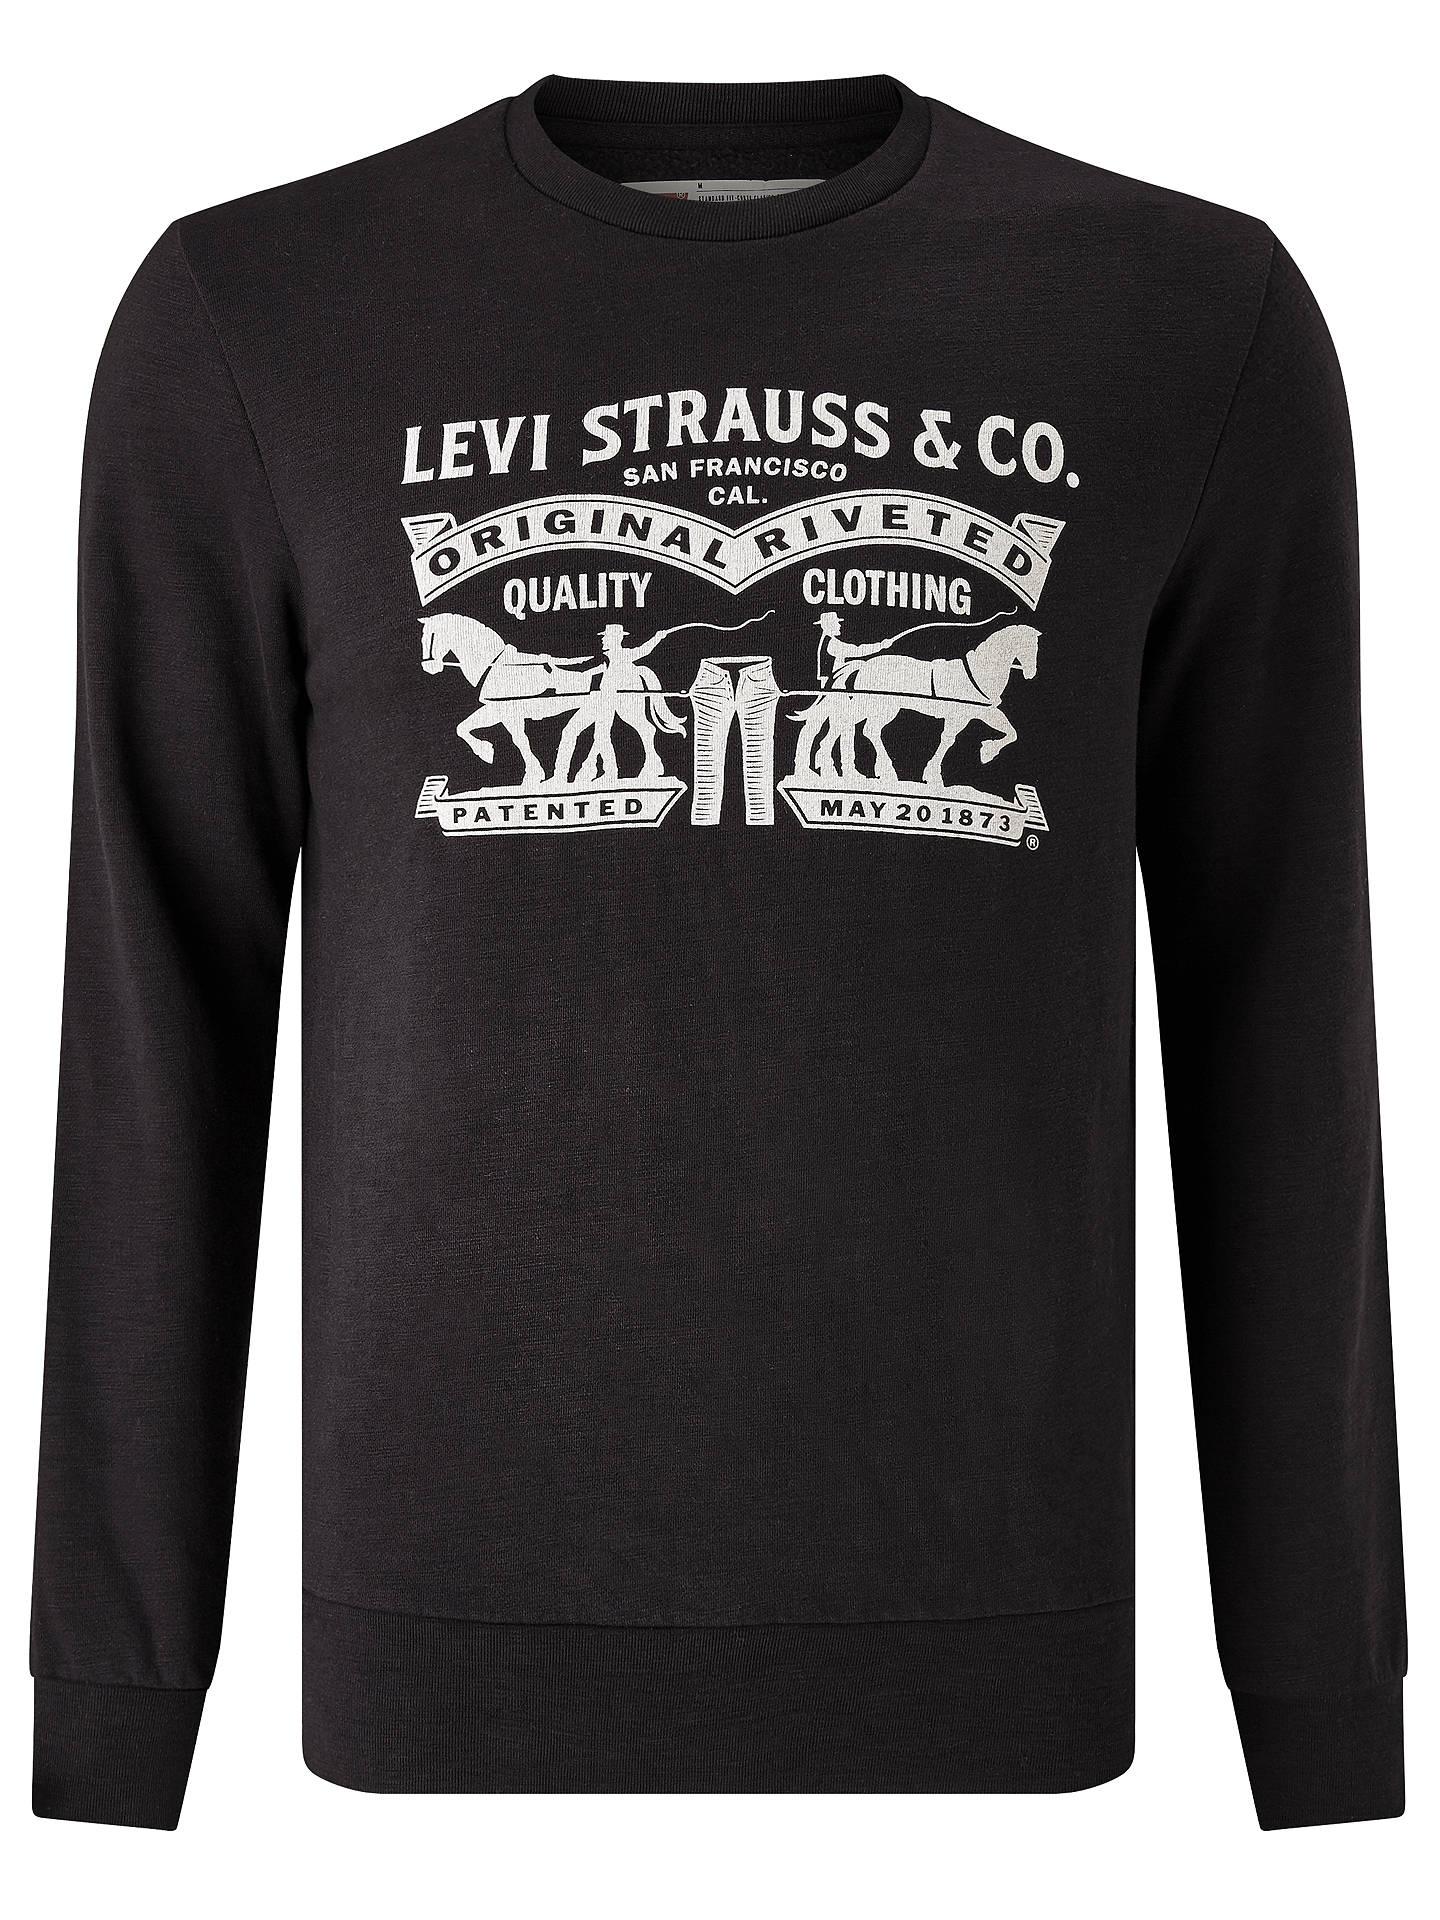 Levis Two Horse Graphic Crew Neck Sweatshirt At John Lewis Partners